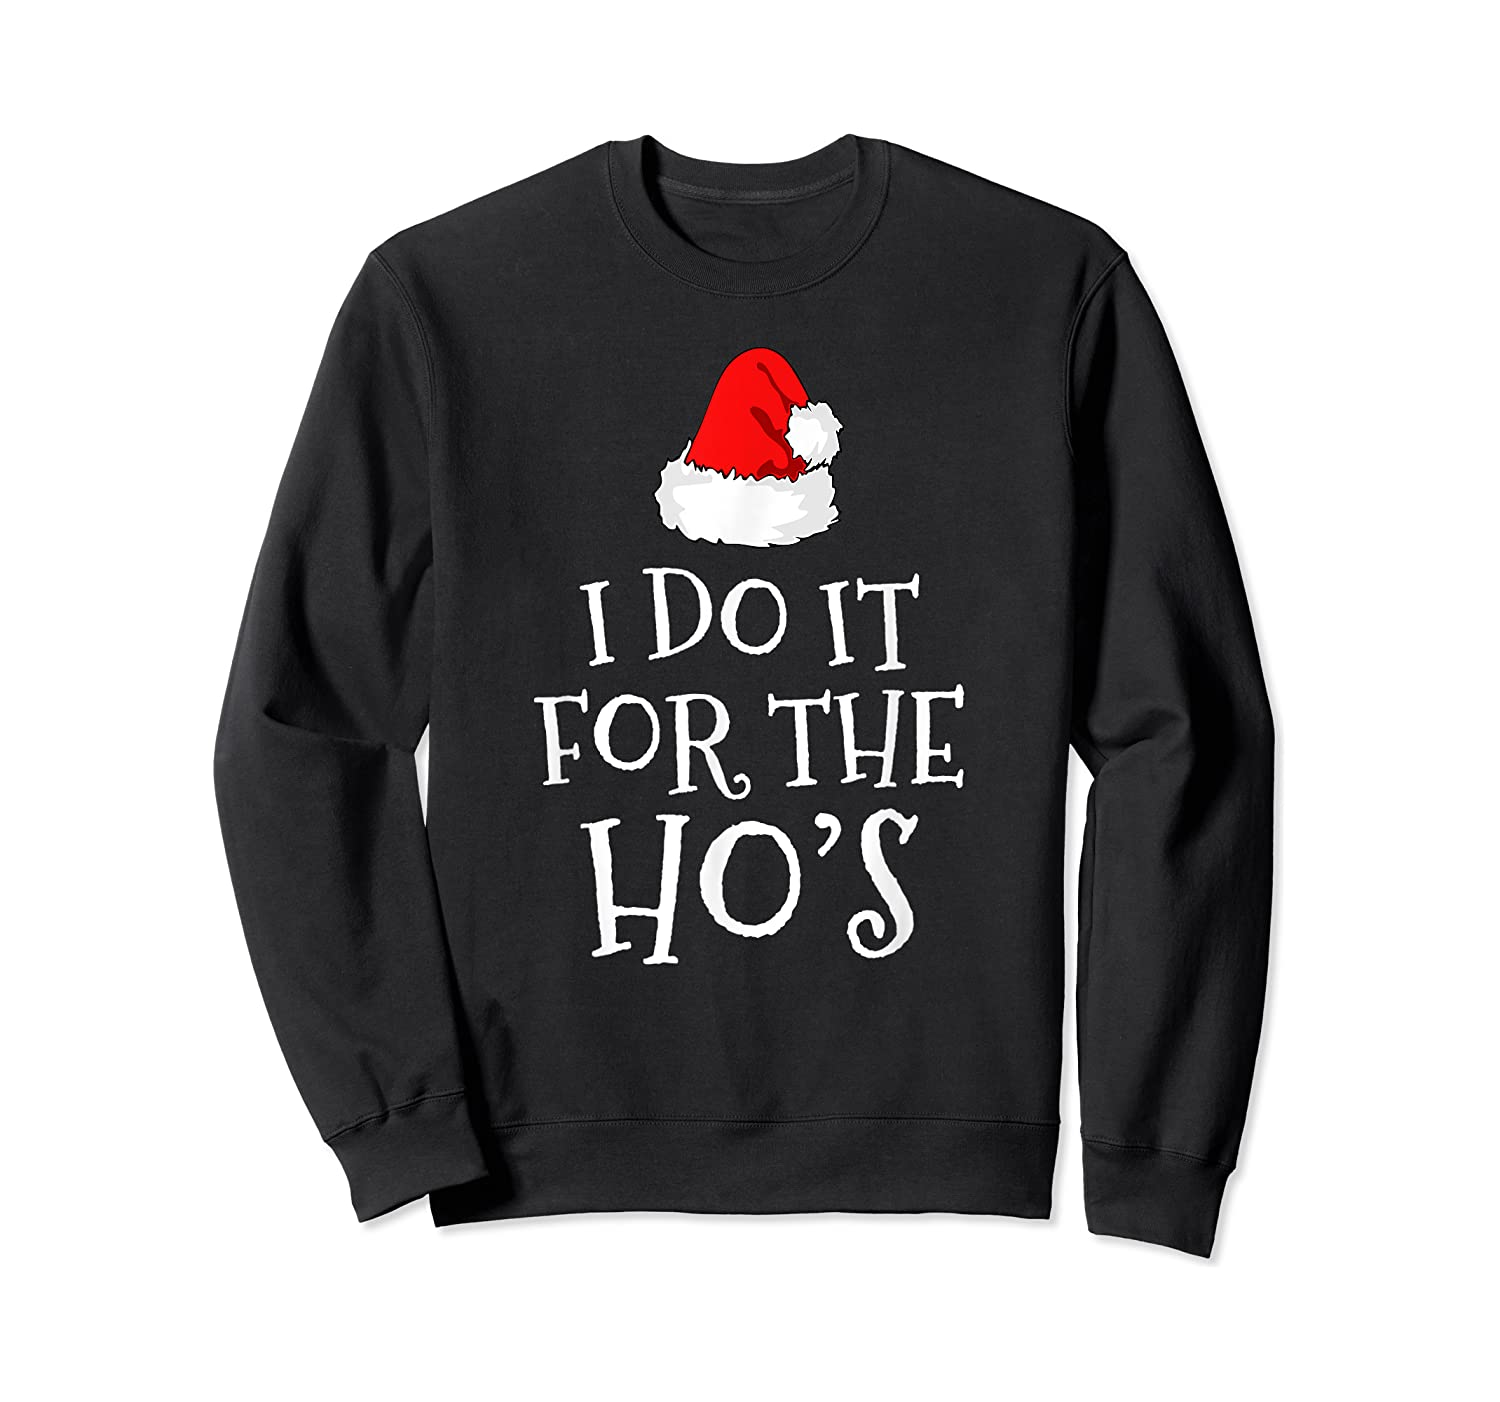 Do T For The Ho's Santa Claus Funny Christmas Gift Shirts Crewneck Sweater